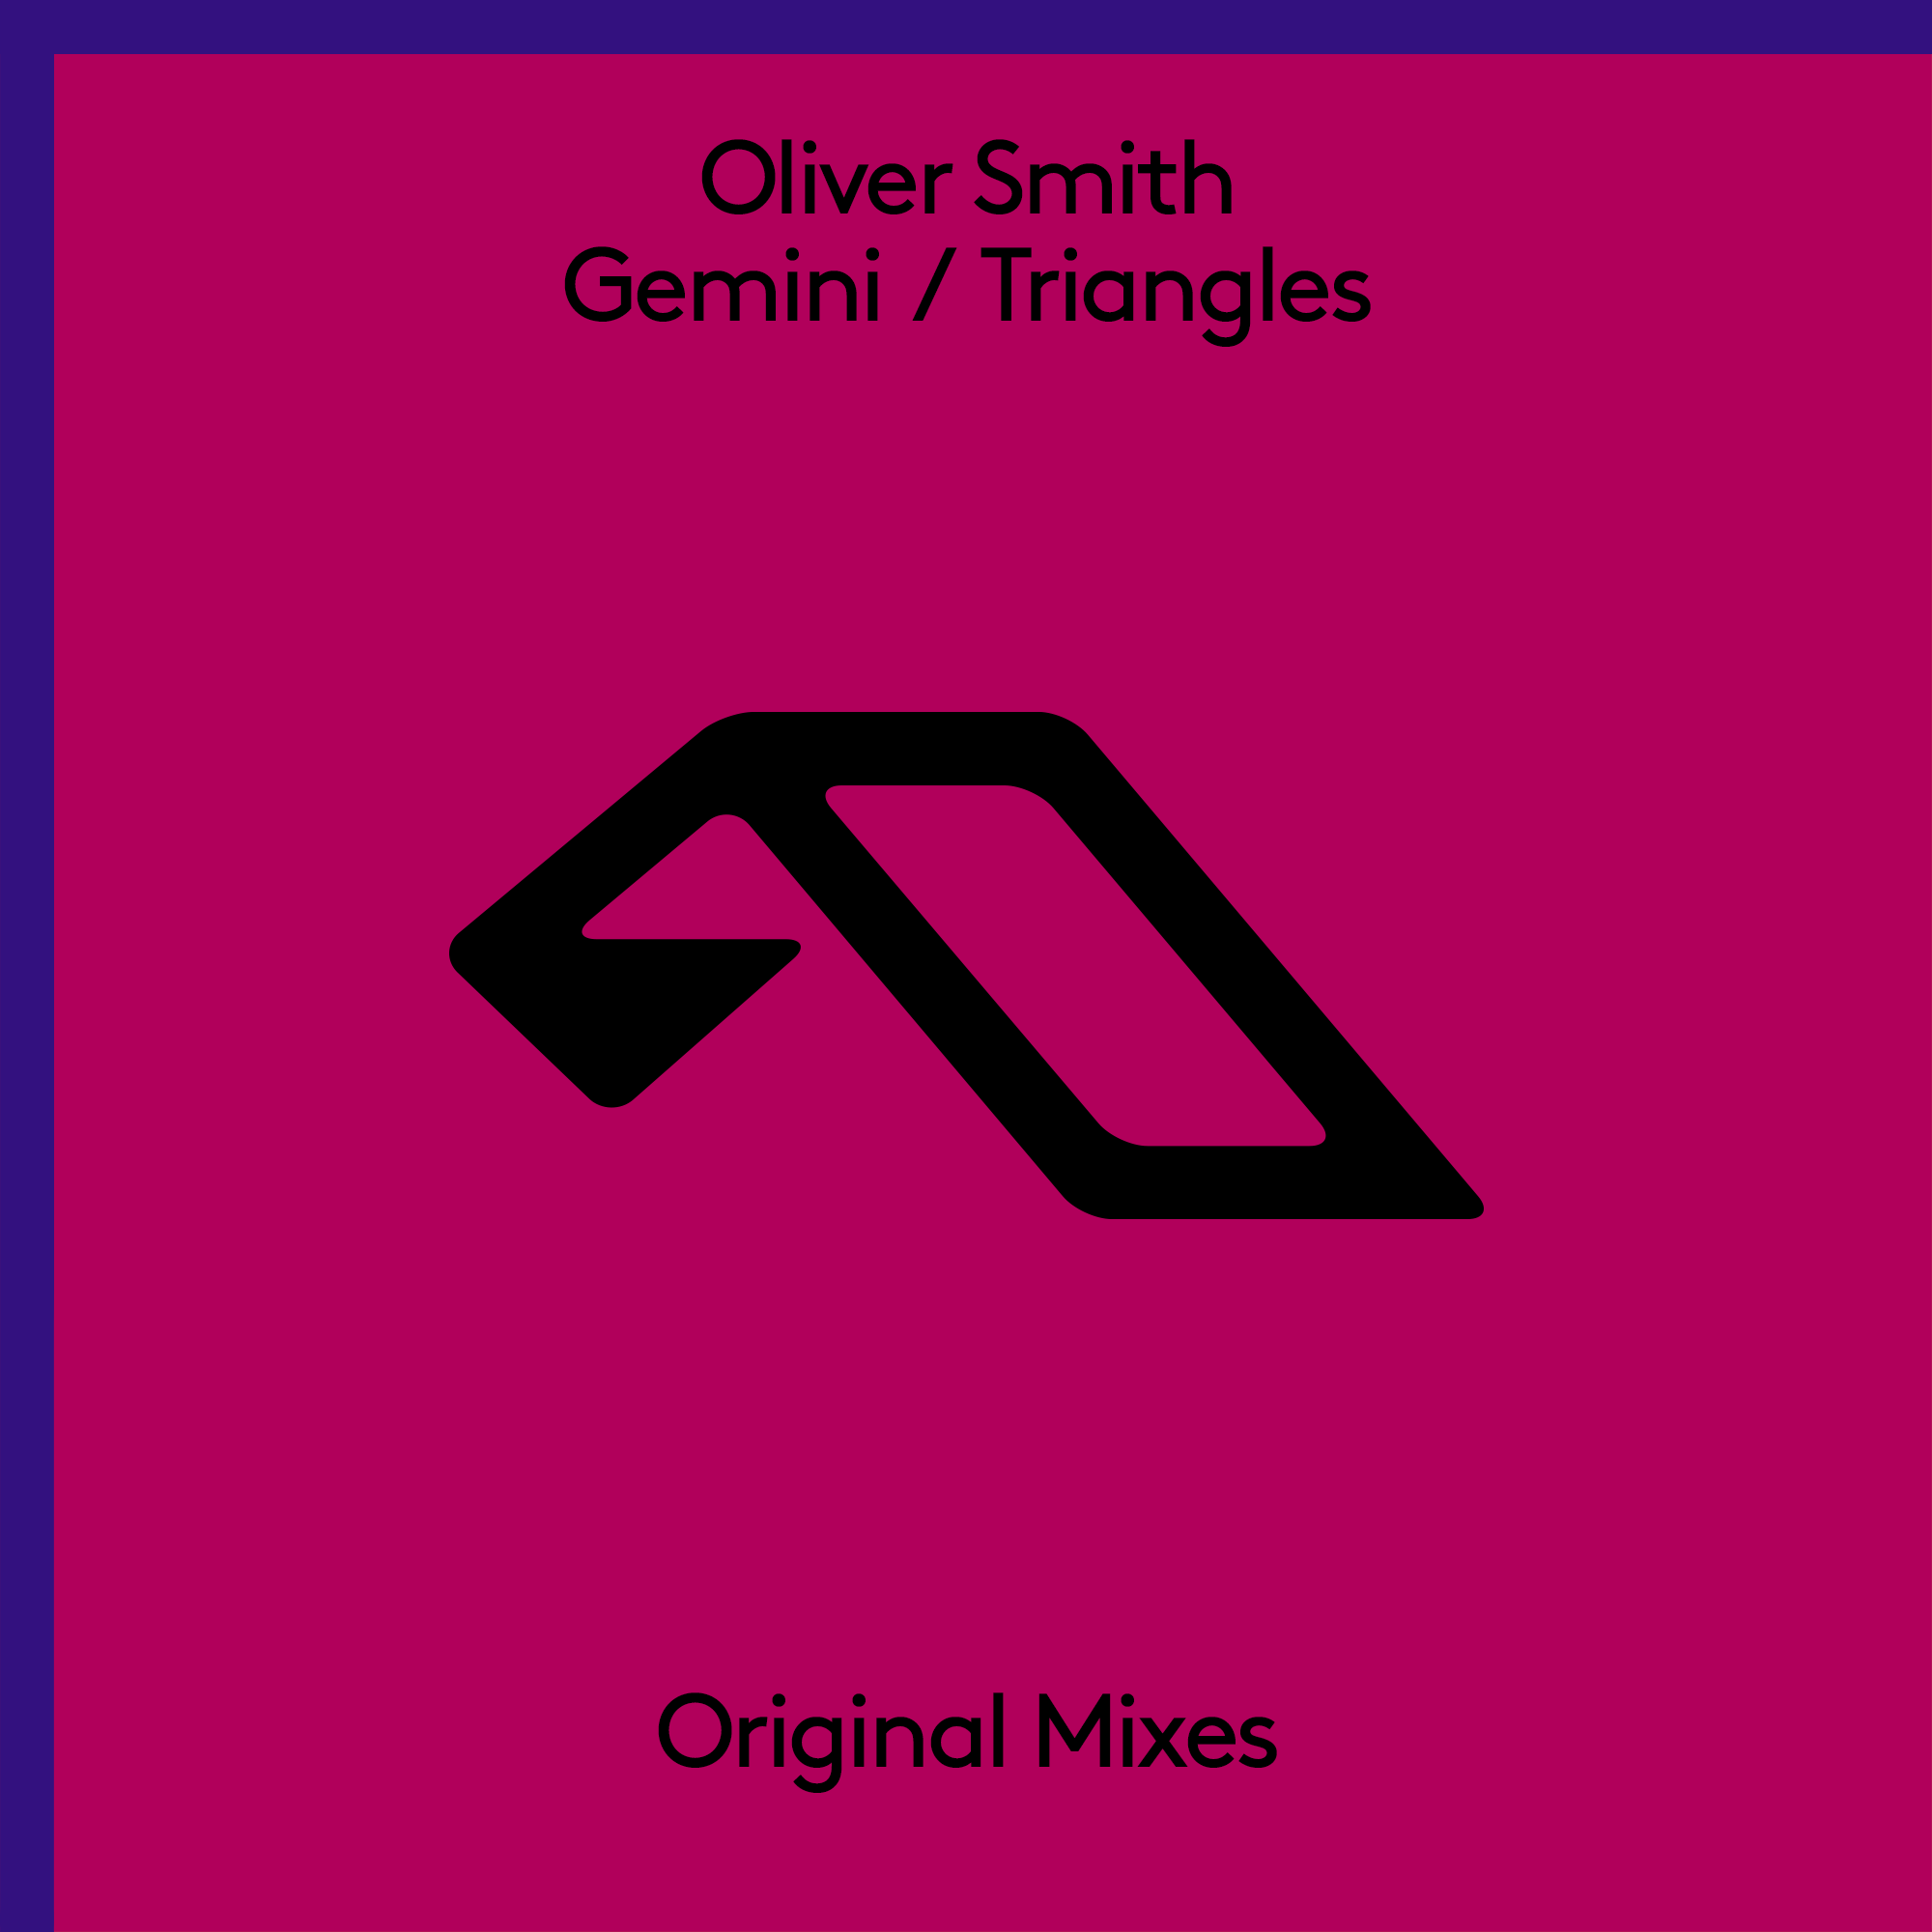 Oliver Smith - Gemini / Triangles EP